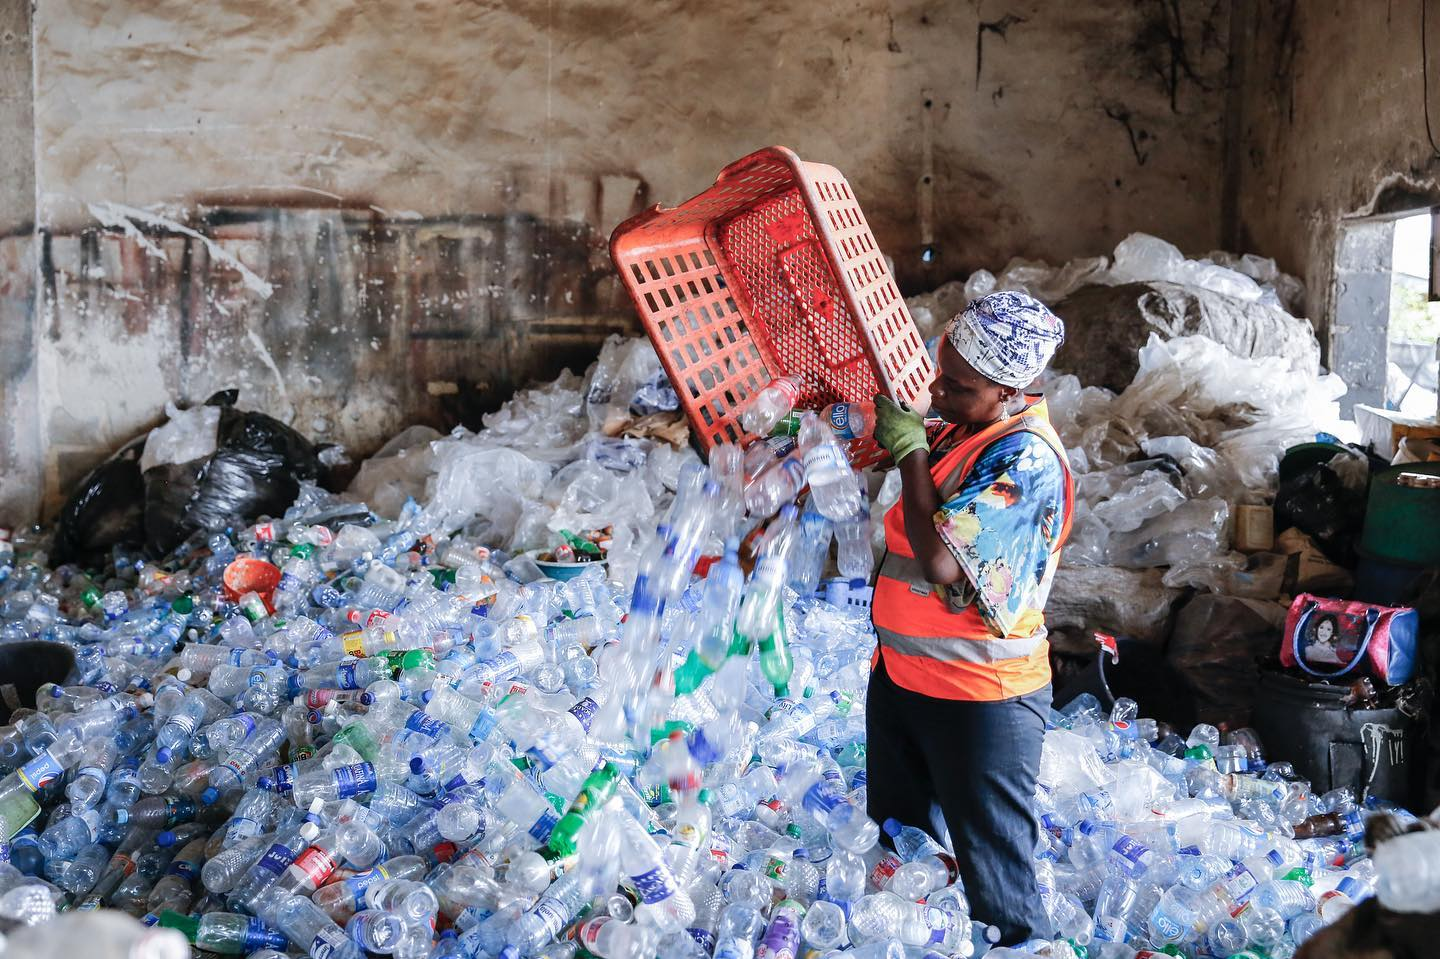 The startup RecycleGO plans to use blockchain to track plastics recycling in Lagos, Nigeria.